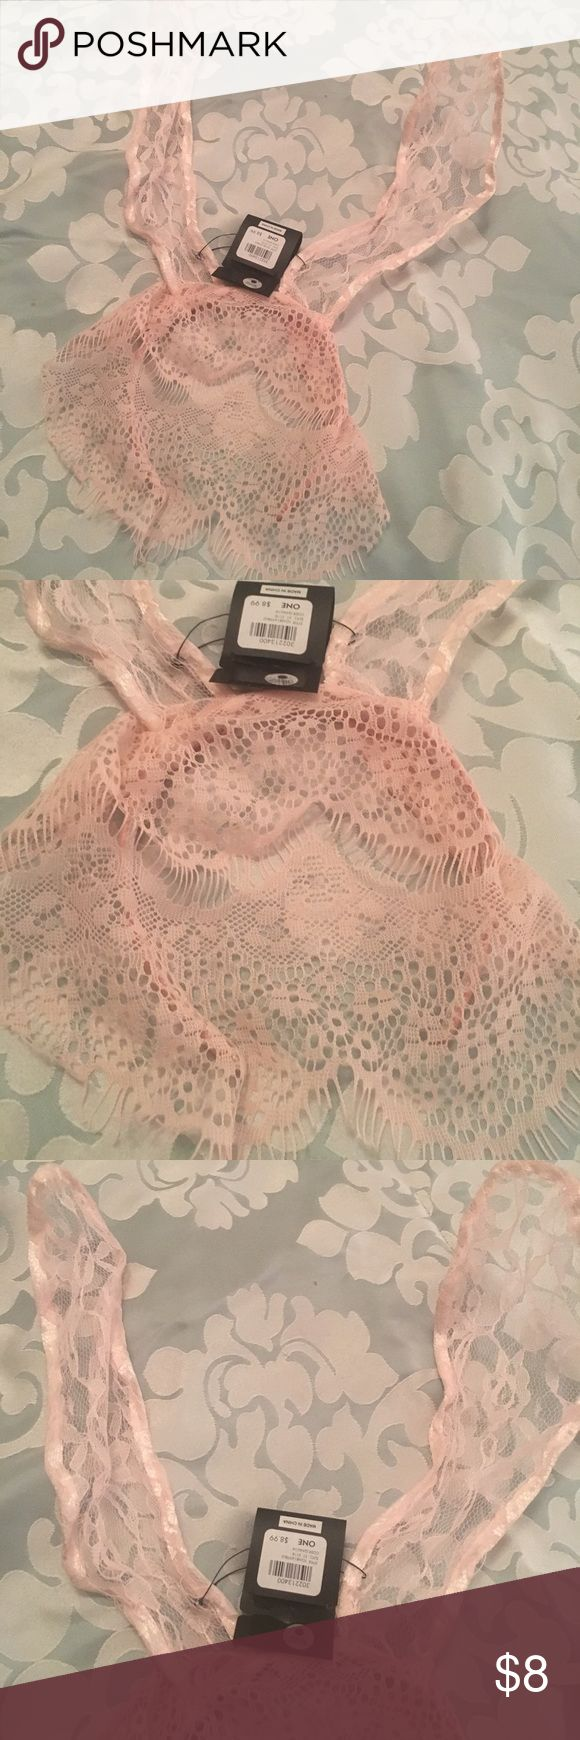 Pink lace rabbit ears w/ veil headband Never worn rabbit ears headband. Pretty pink with veil detail. Perfect for any Ariana Grande lover or to spruce up any dressing up of any sort 🤗 Charlotte Russe Accessories Hair Accessories